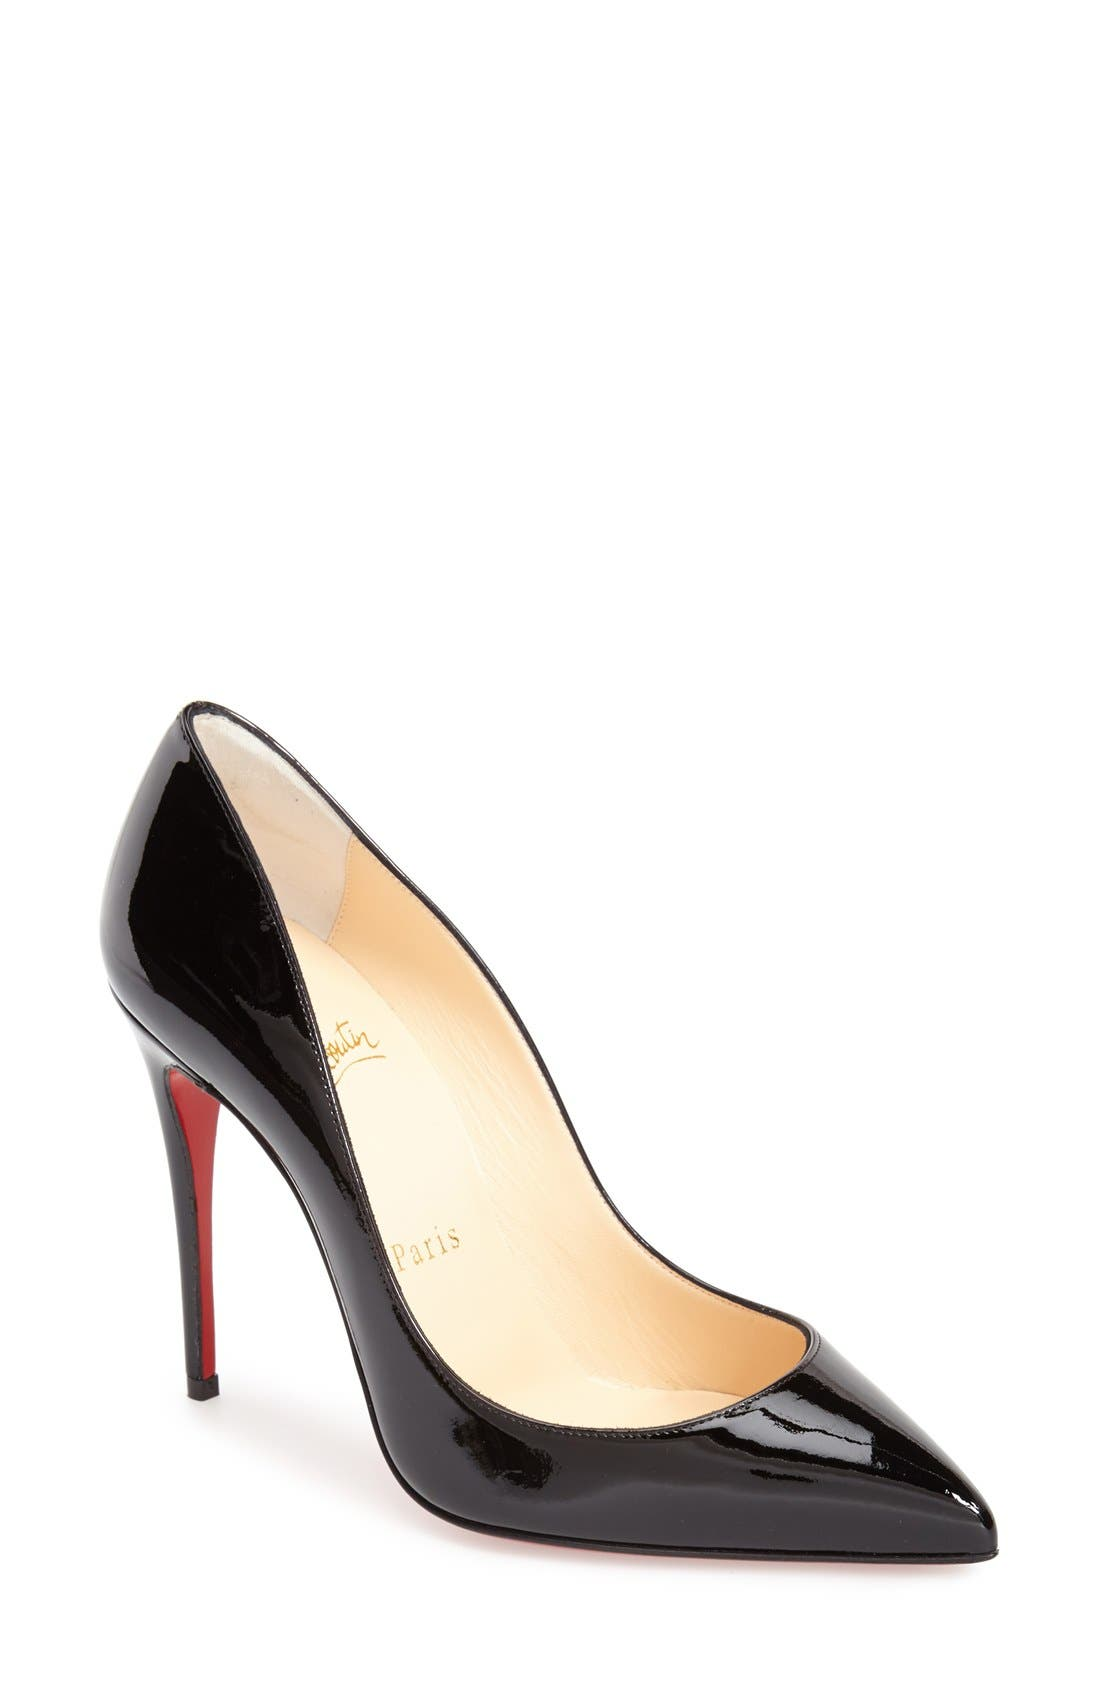 CHRISTIAN LOUBOUTIN,                             Pigalle Follies Pointy Toe Pump,                             Main thumbnail 1, color,                             001